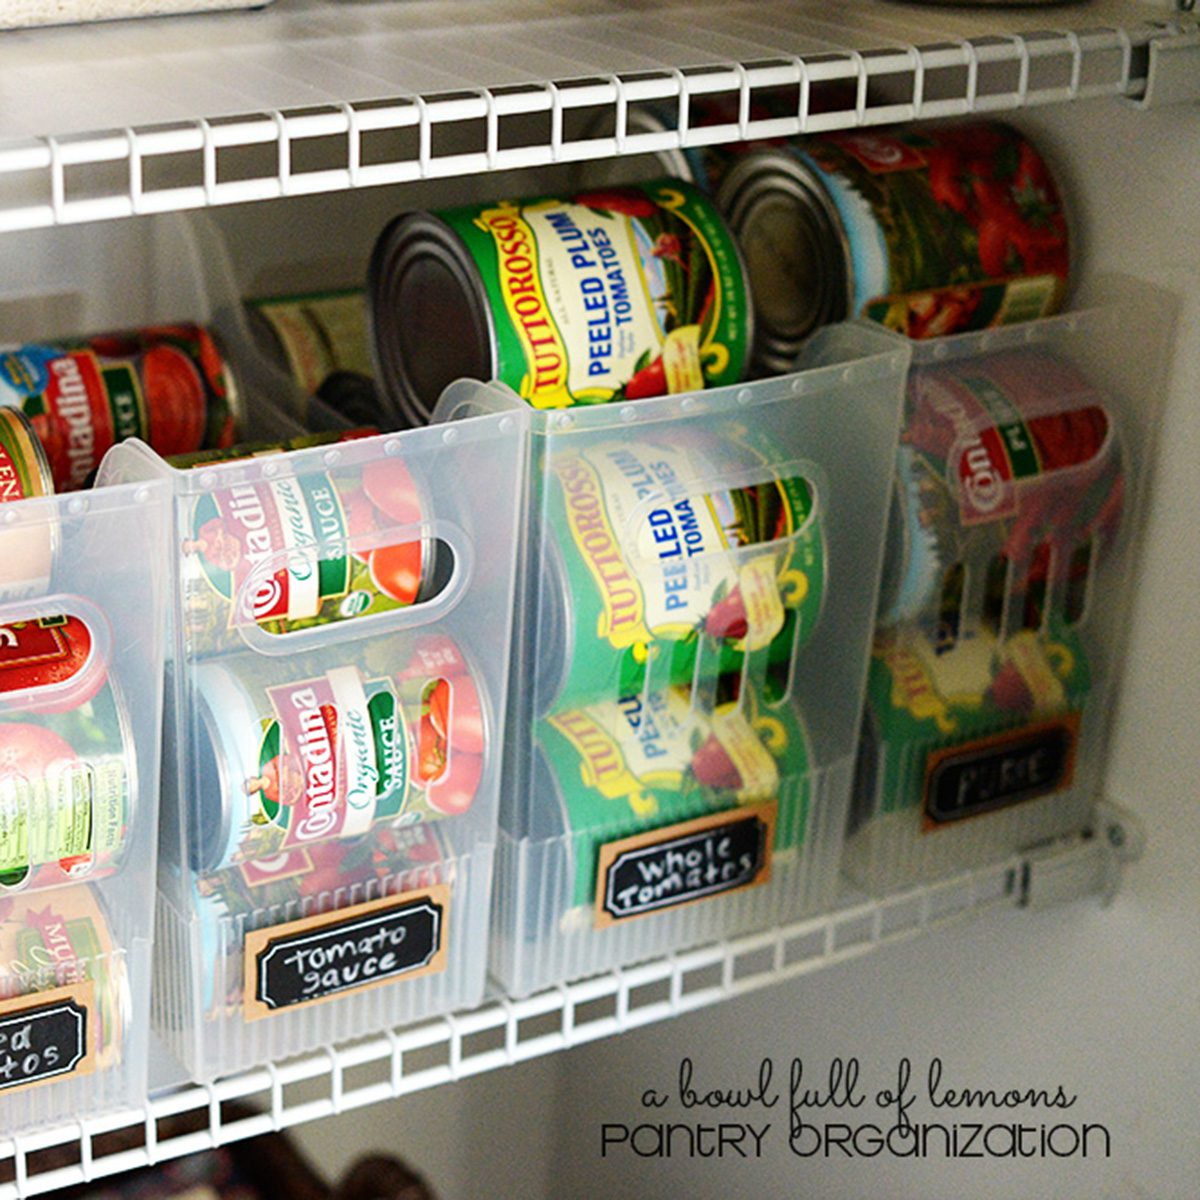 13 Easy Pantry Organization Tips From The Experts